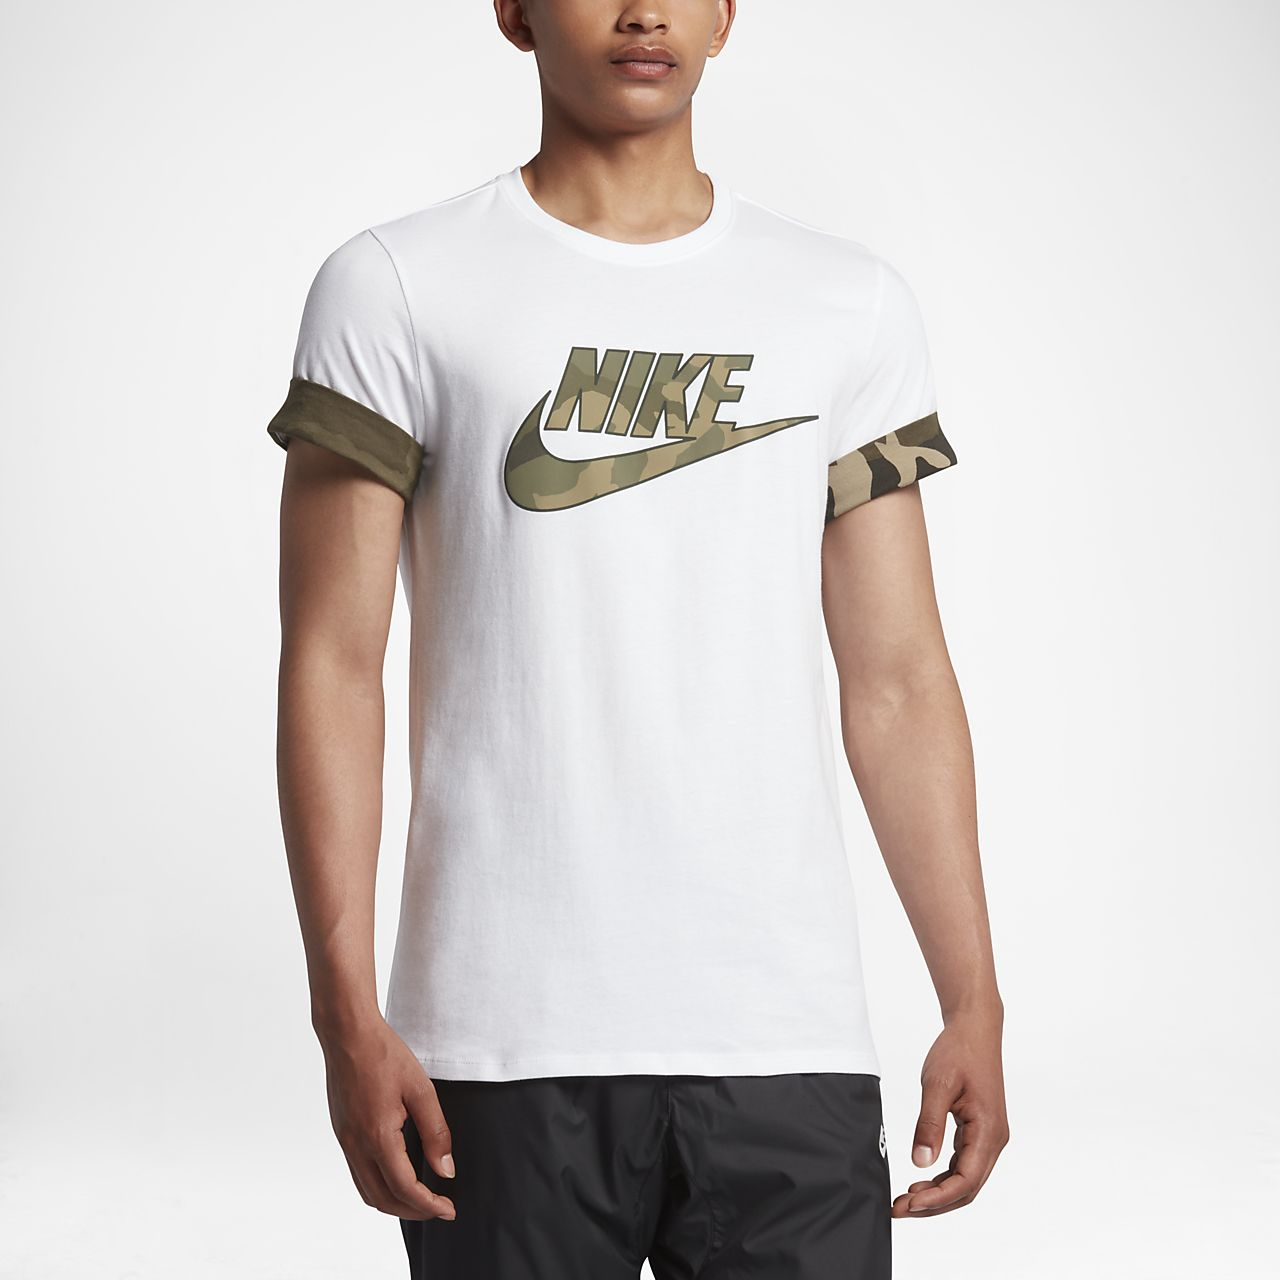 nike sportswear men 39 s camo t shirt gb. Black Bedroom Furniture Sets. Home Design Ideas